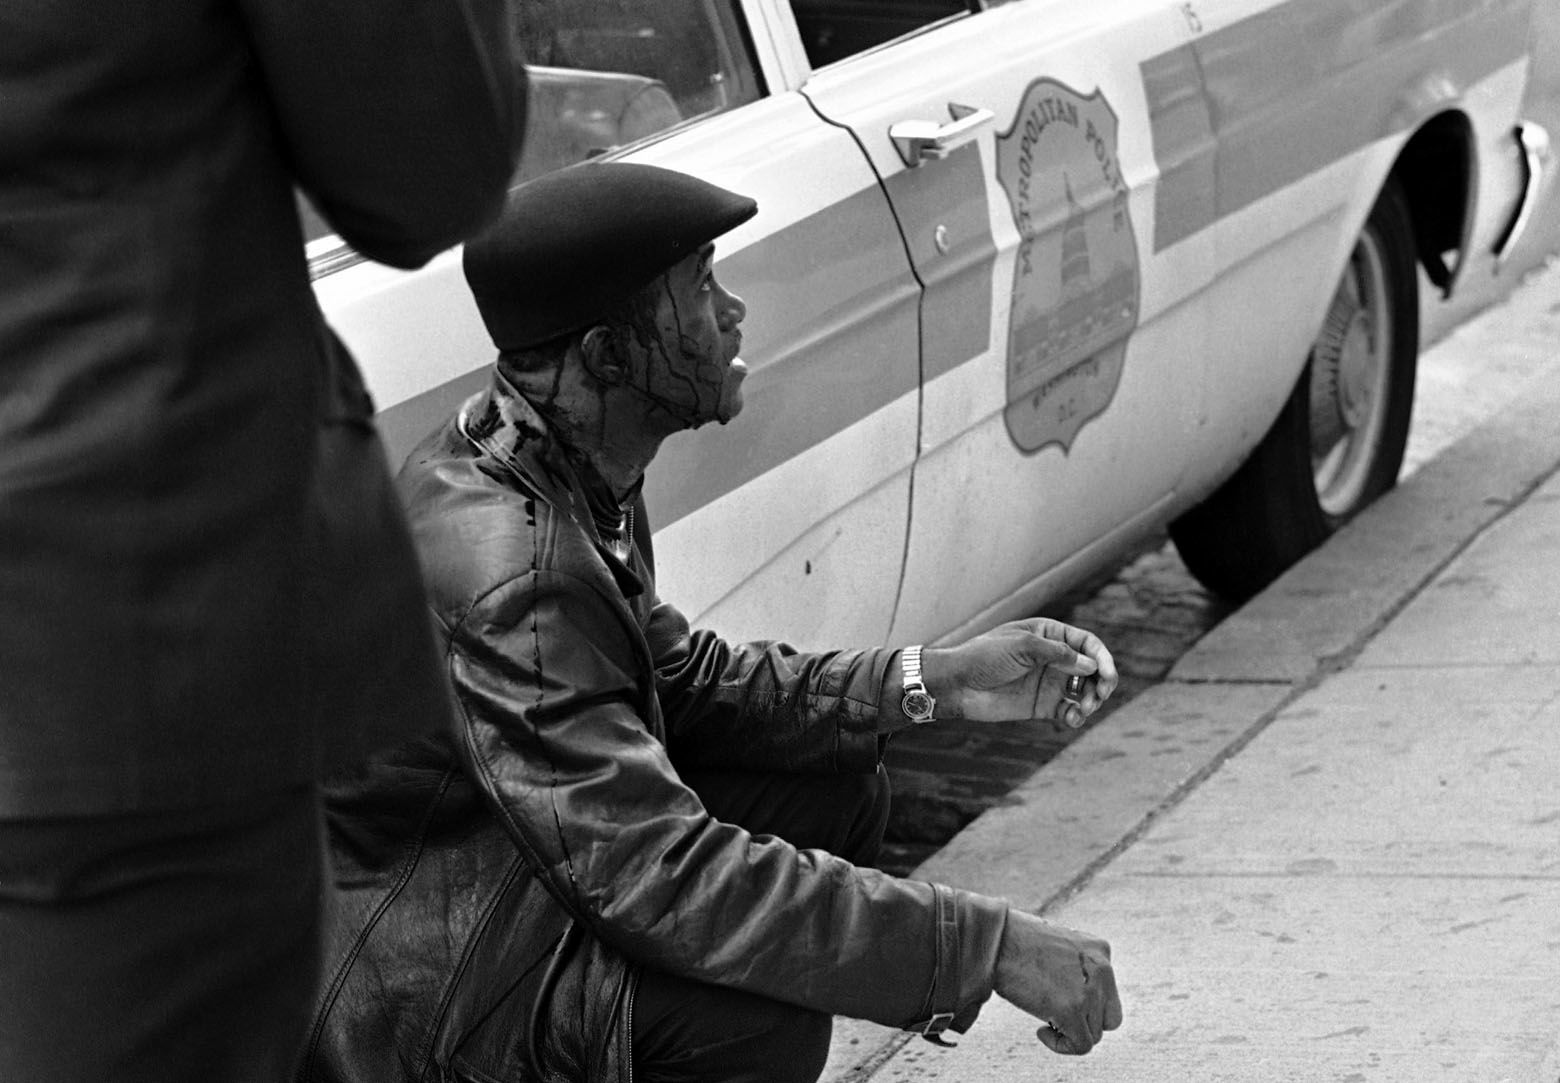 Man was arrested after police reported he fled a house, armed with a .22 caliber pistol, at 11th and K Streets, N.W., on April 7, 1968. He was taken into custody, the police reported, without any shots being fired. (AP Photo/Charles W. Harrity)